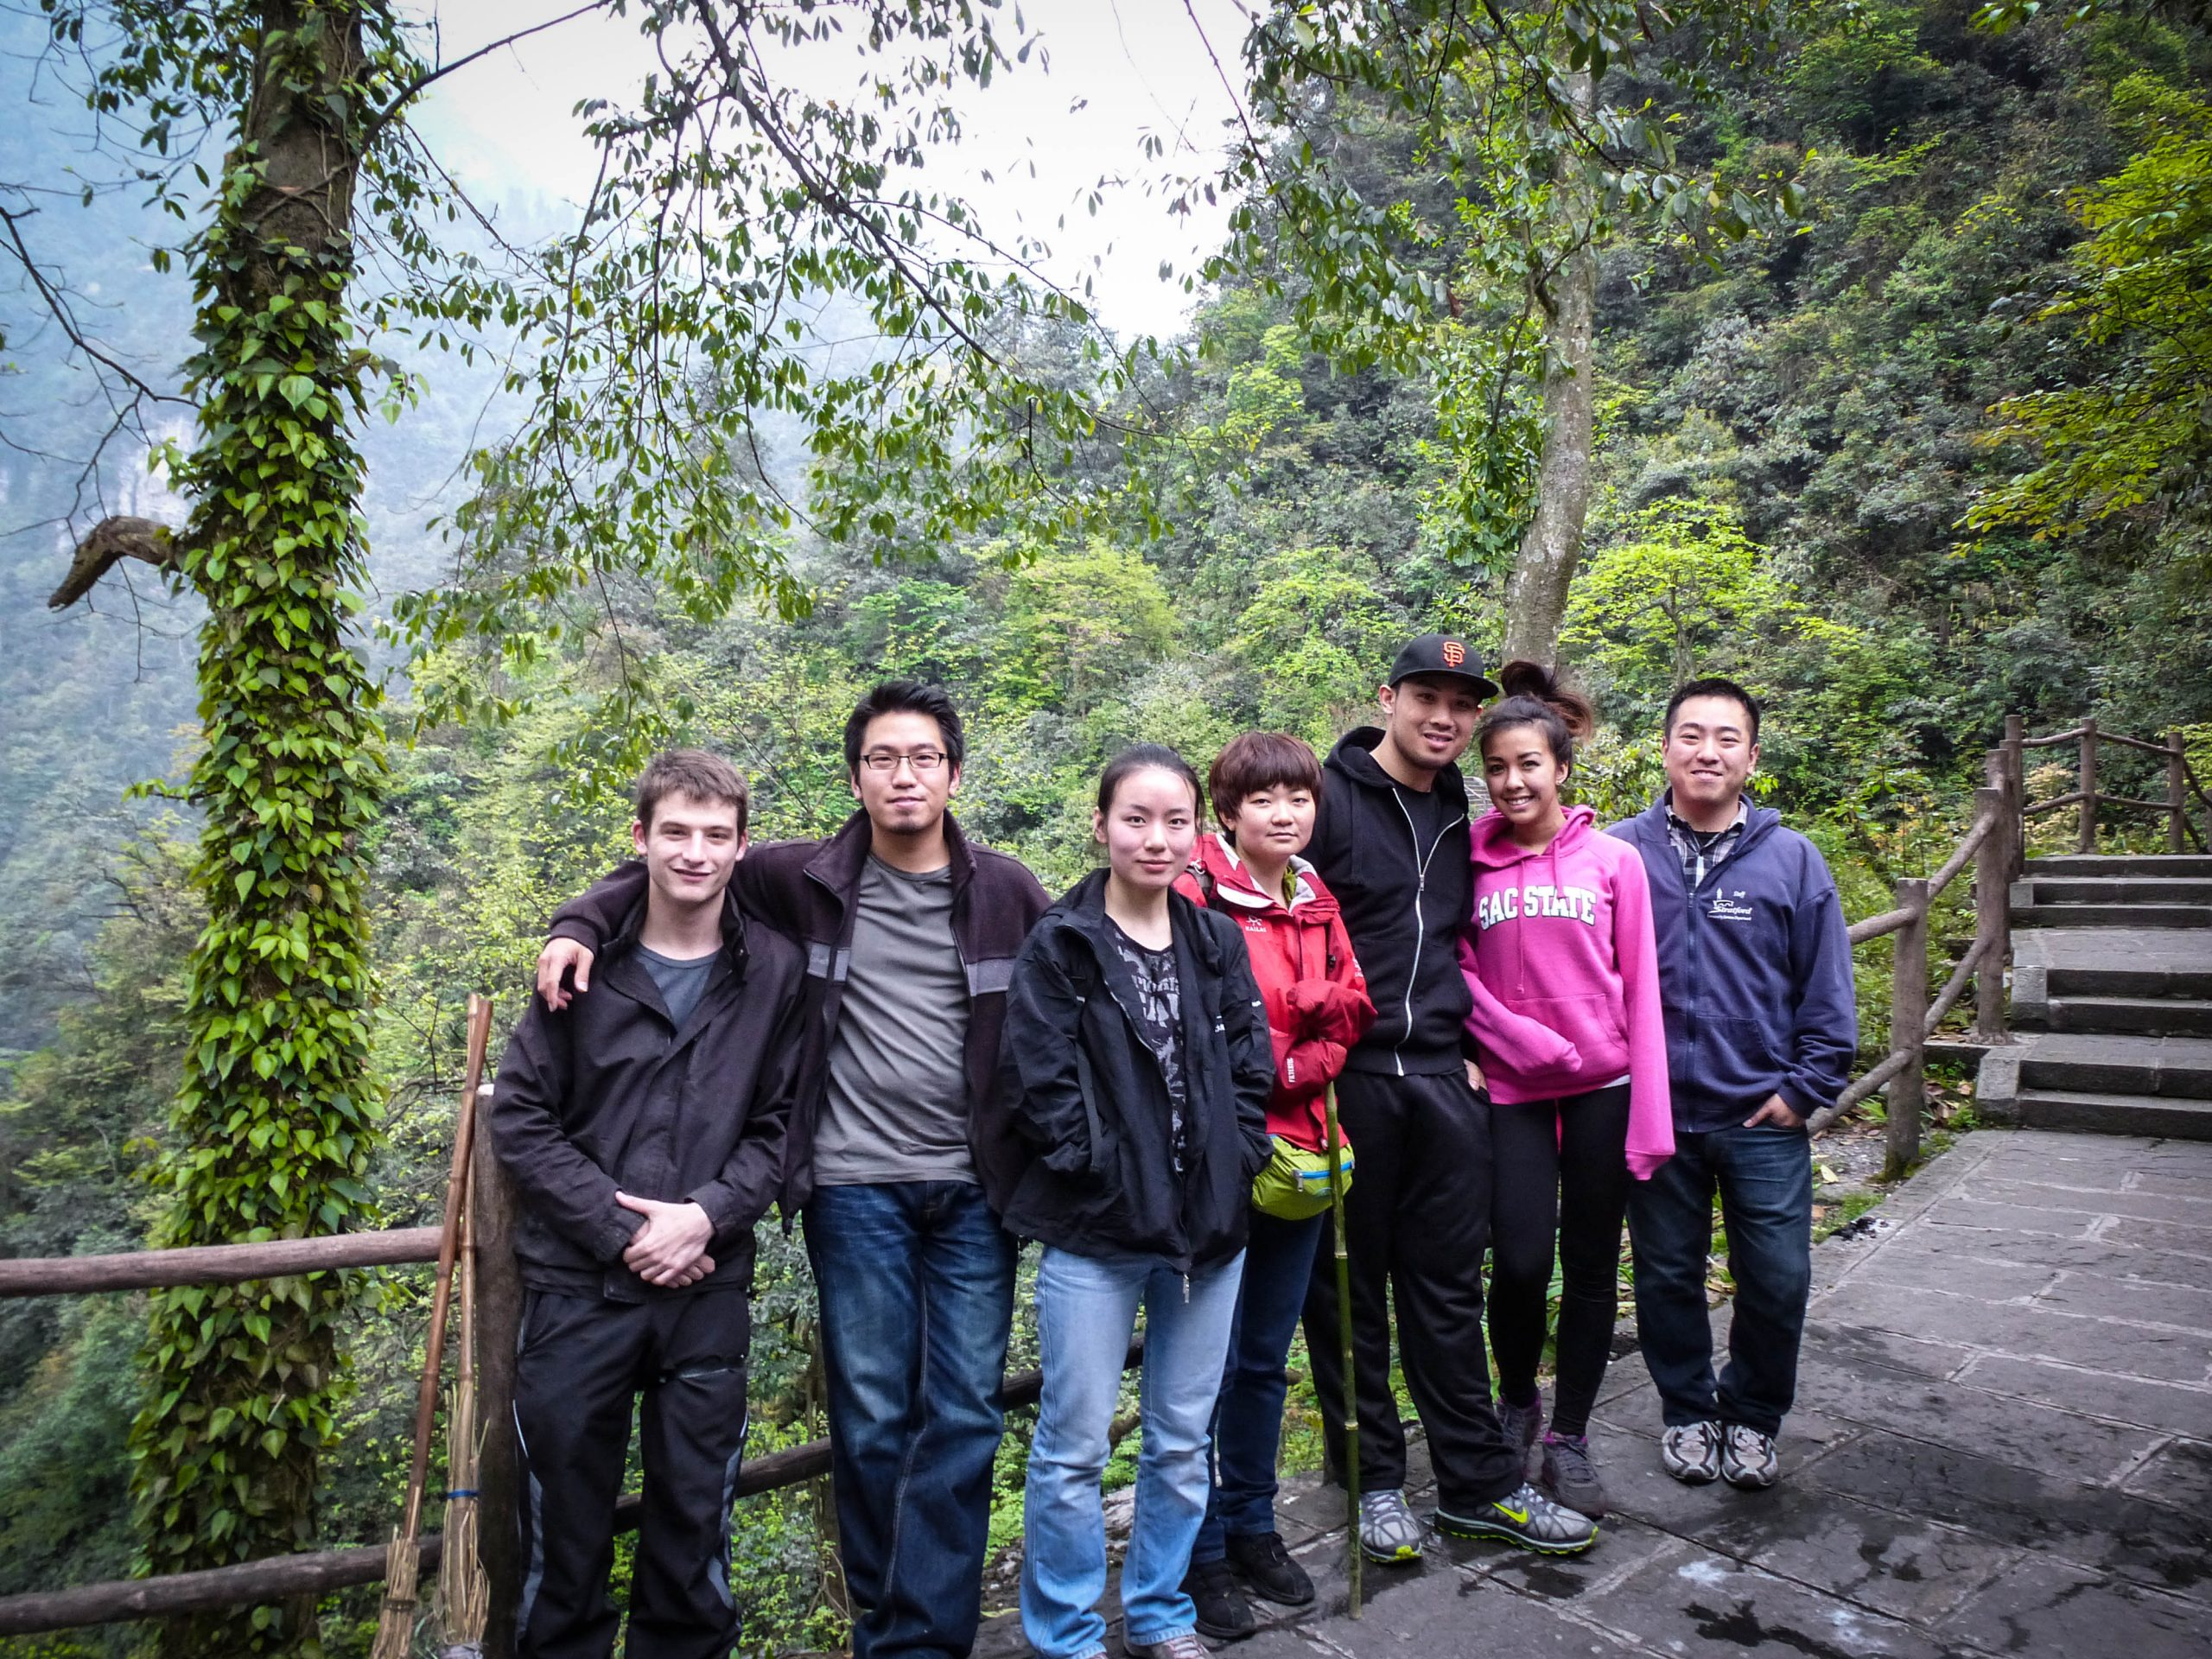 TEFL teachers on a trip with some Chinese friends to climb Emei Shan, China.